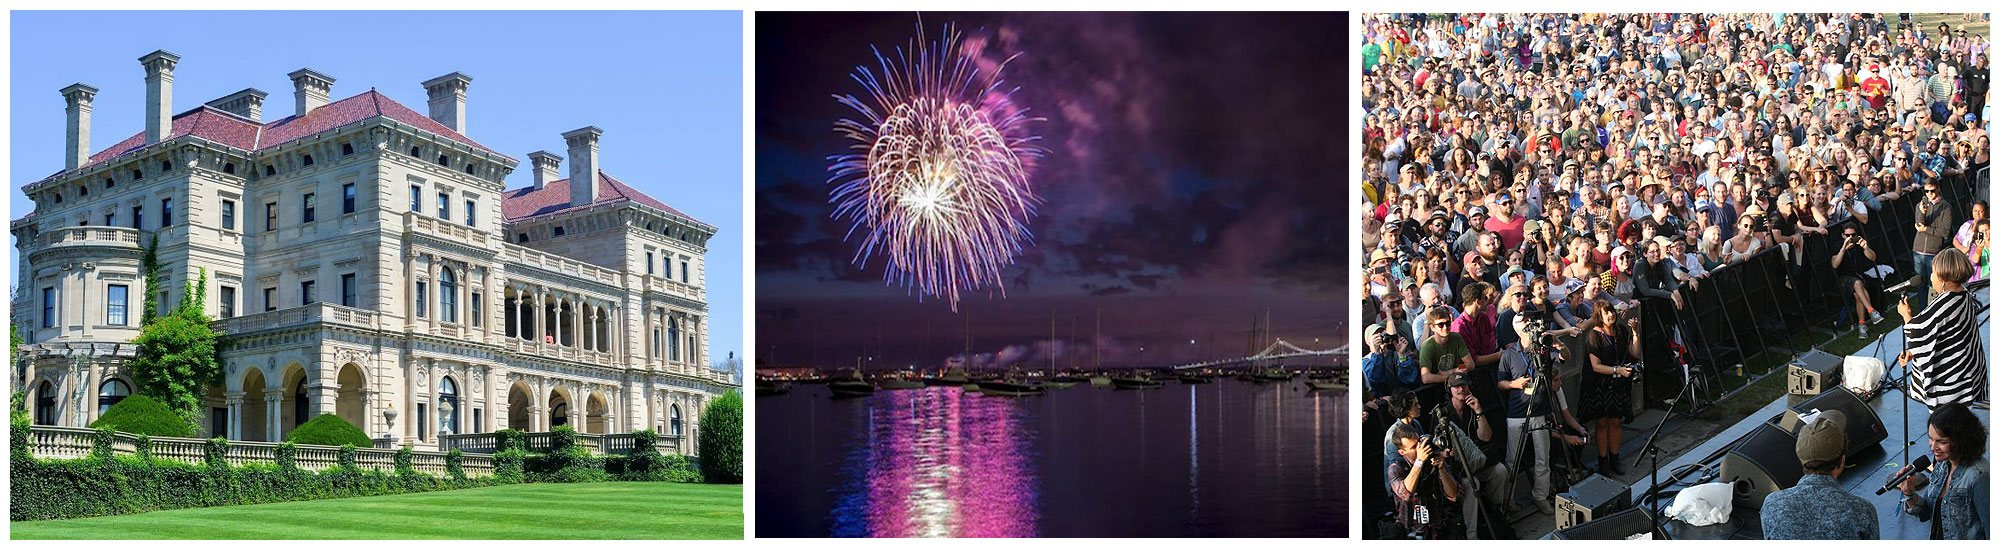 events, festivals and things to do in newport ri